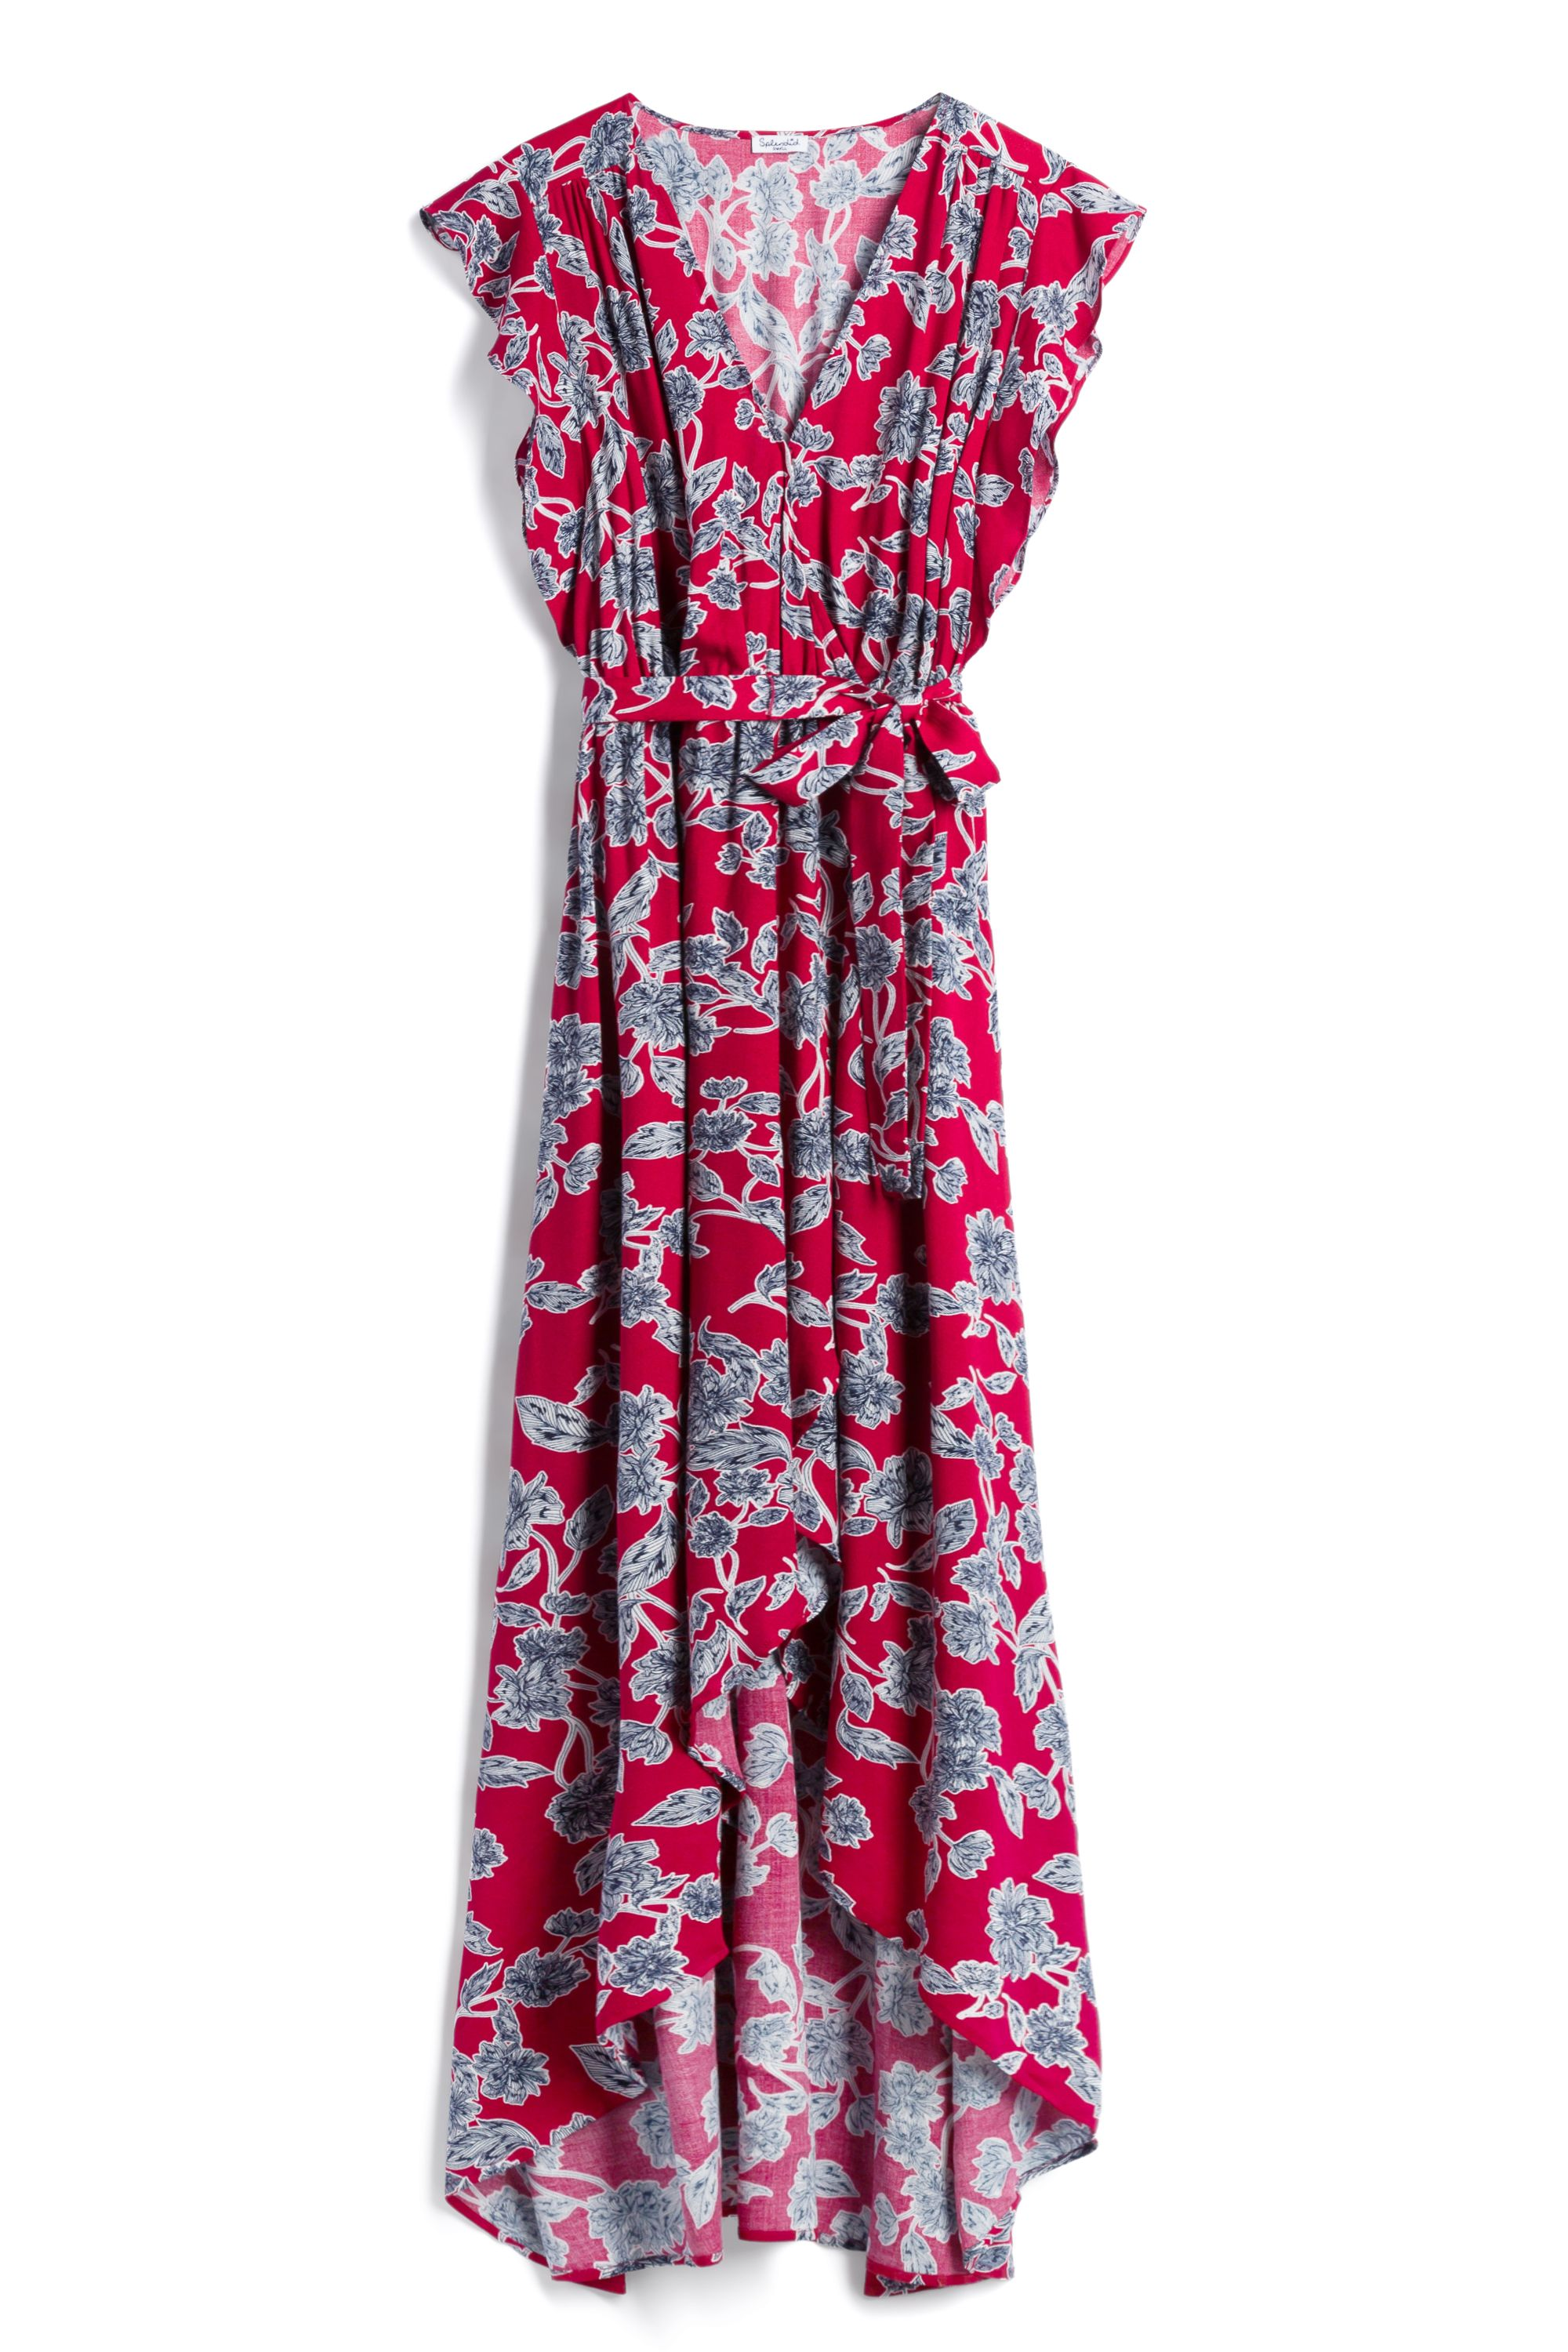 076a8800c89 Floral maxi dress from Stitch Fix.  ad    When you sign up for Stitch Fix